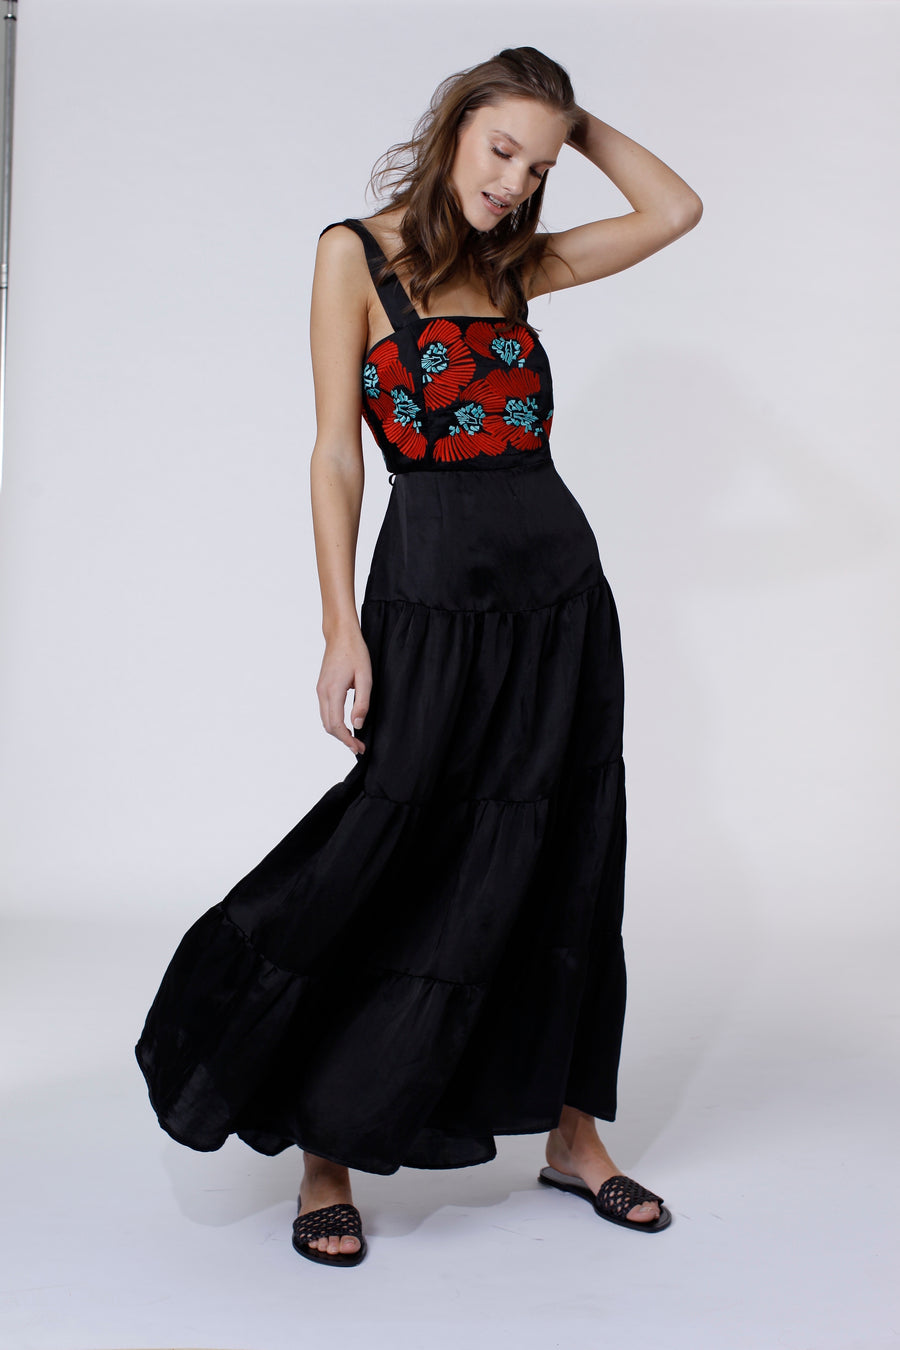 Karina Grimaldi Vale Maxi Dress